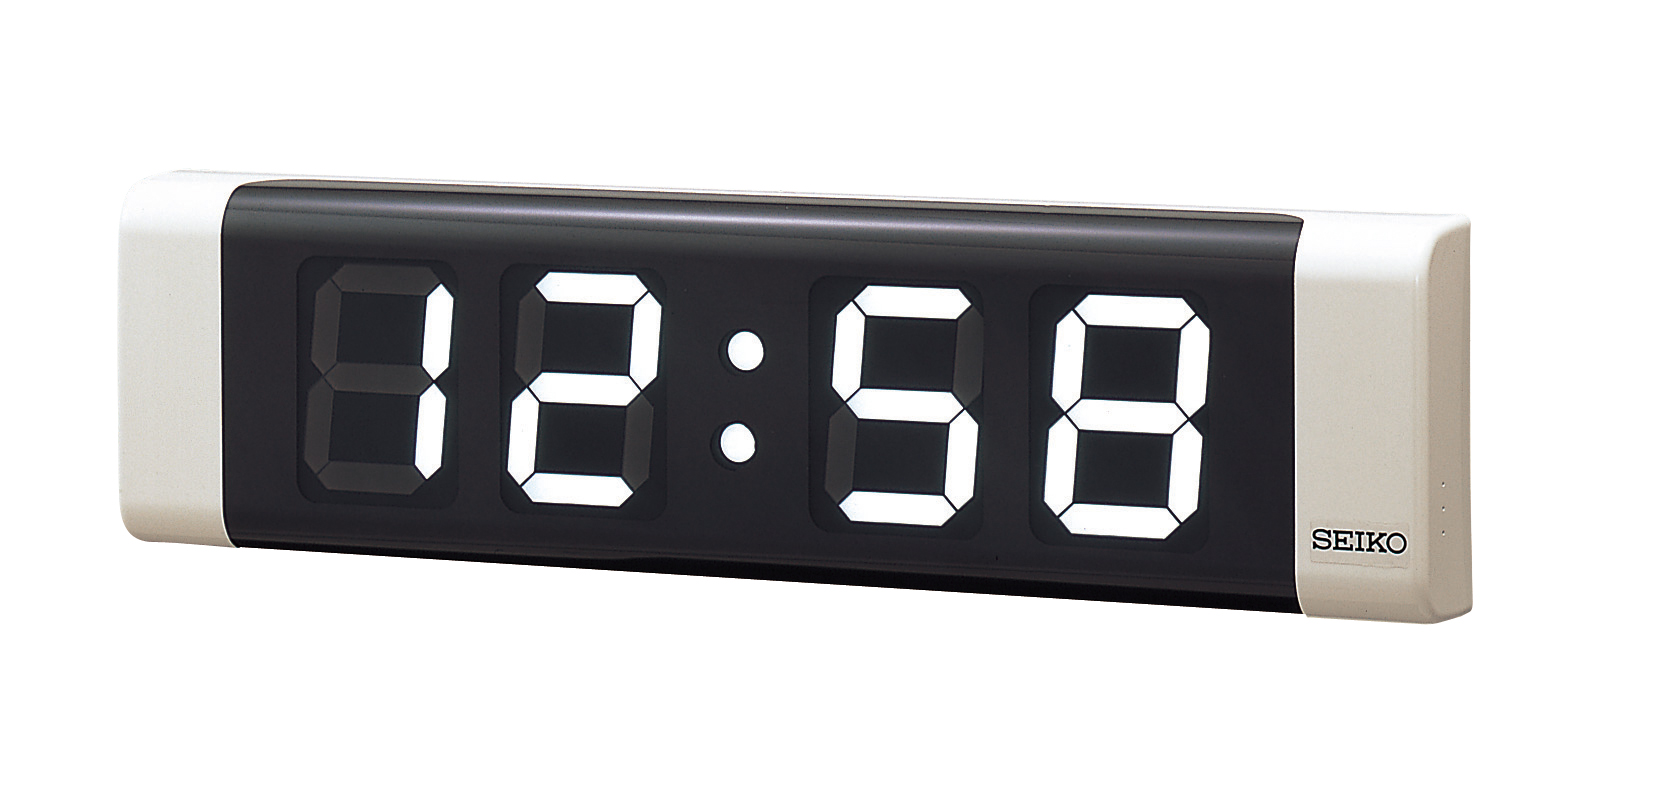 Digital Clock (Independent・Indoor)